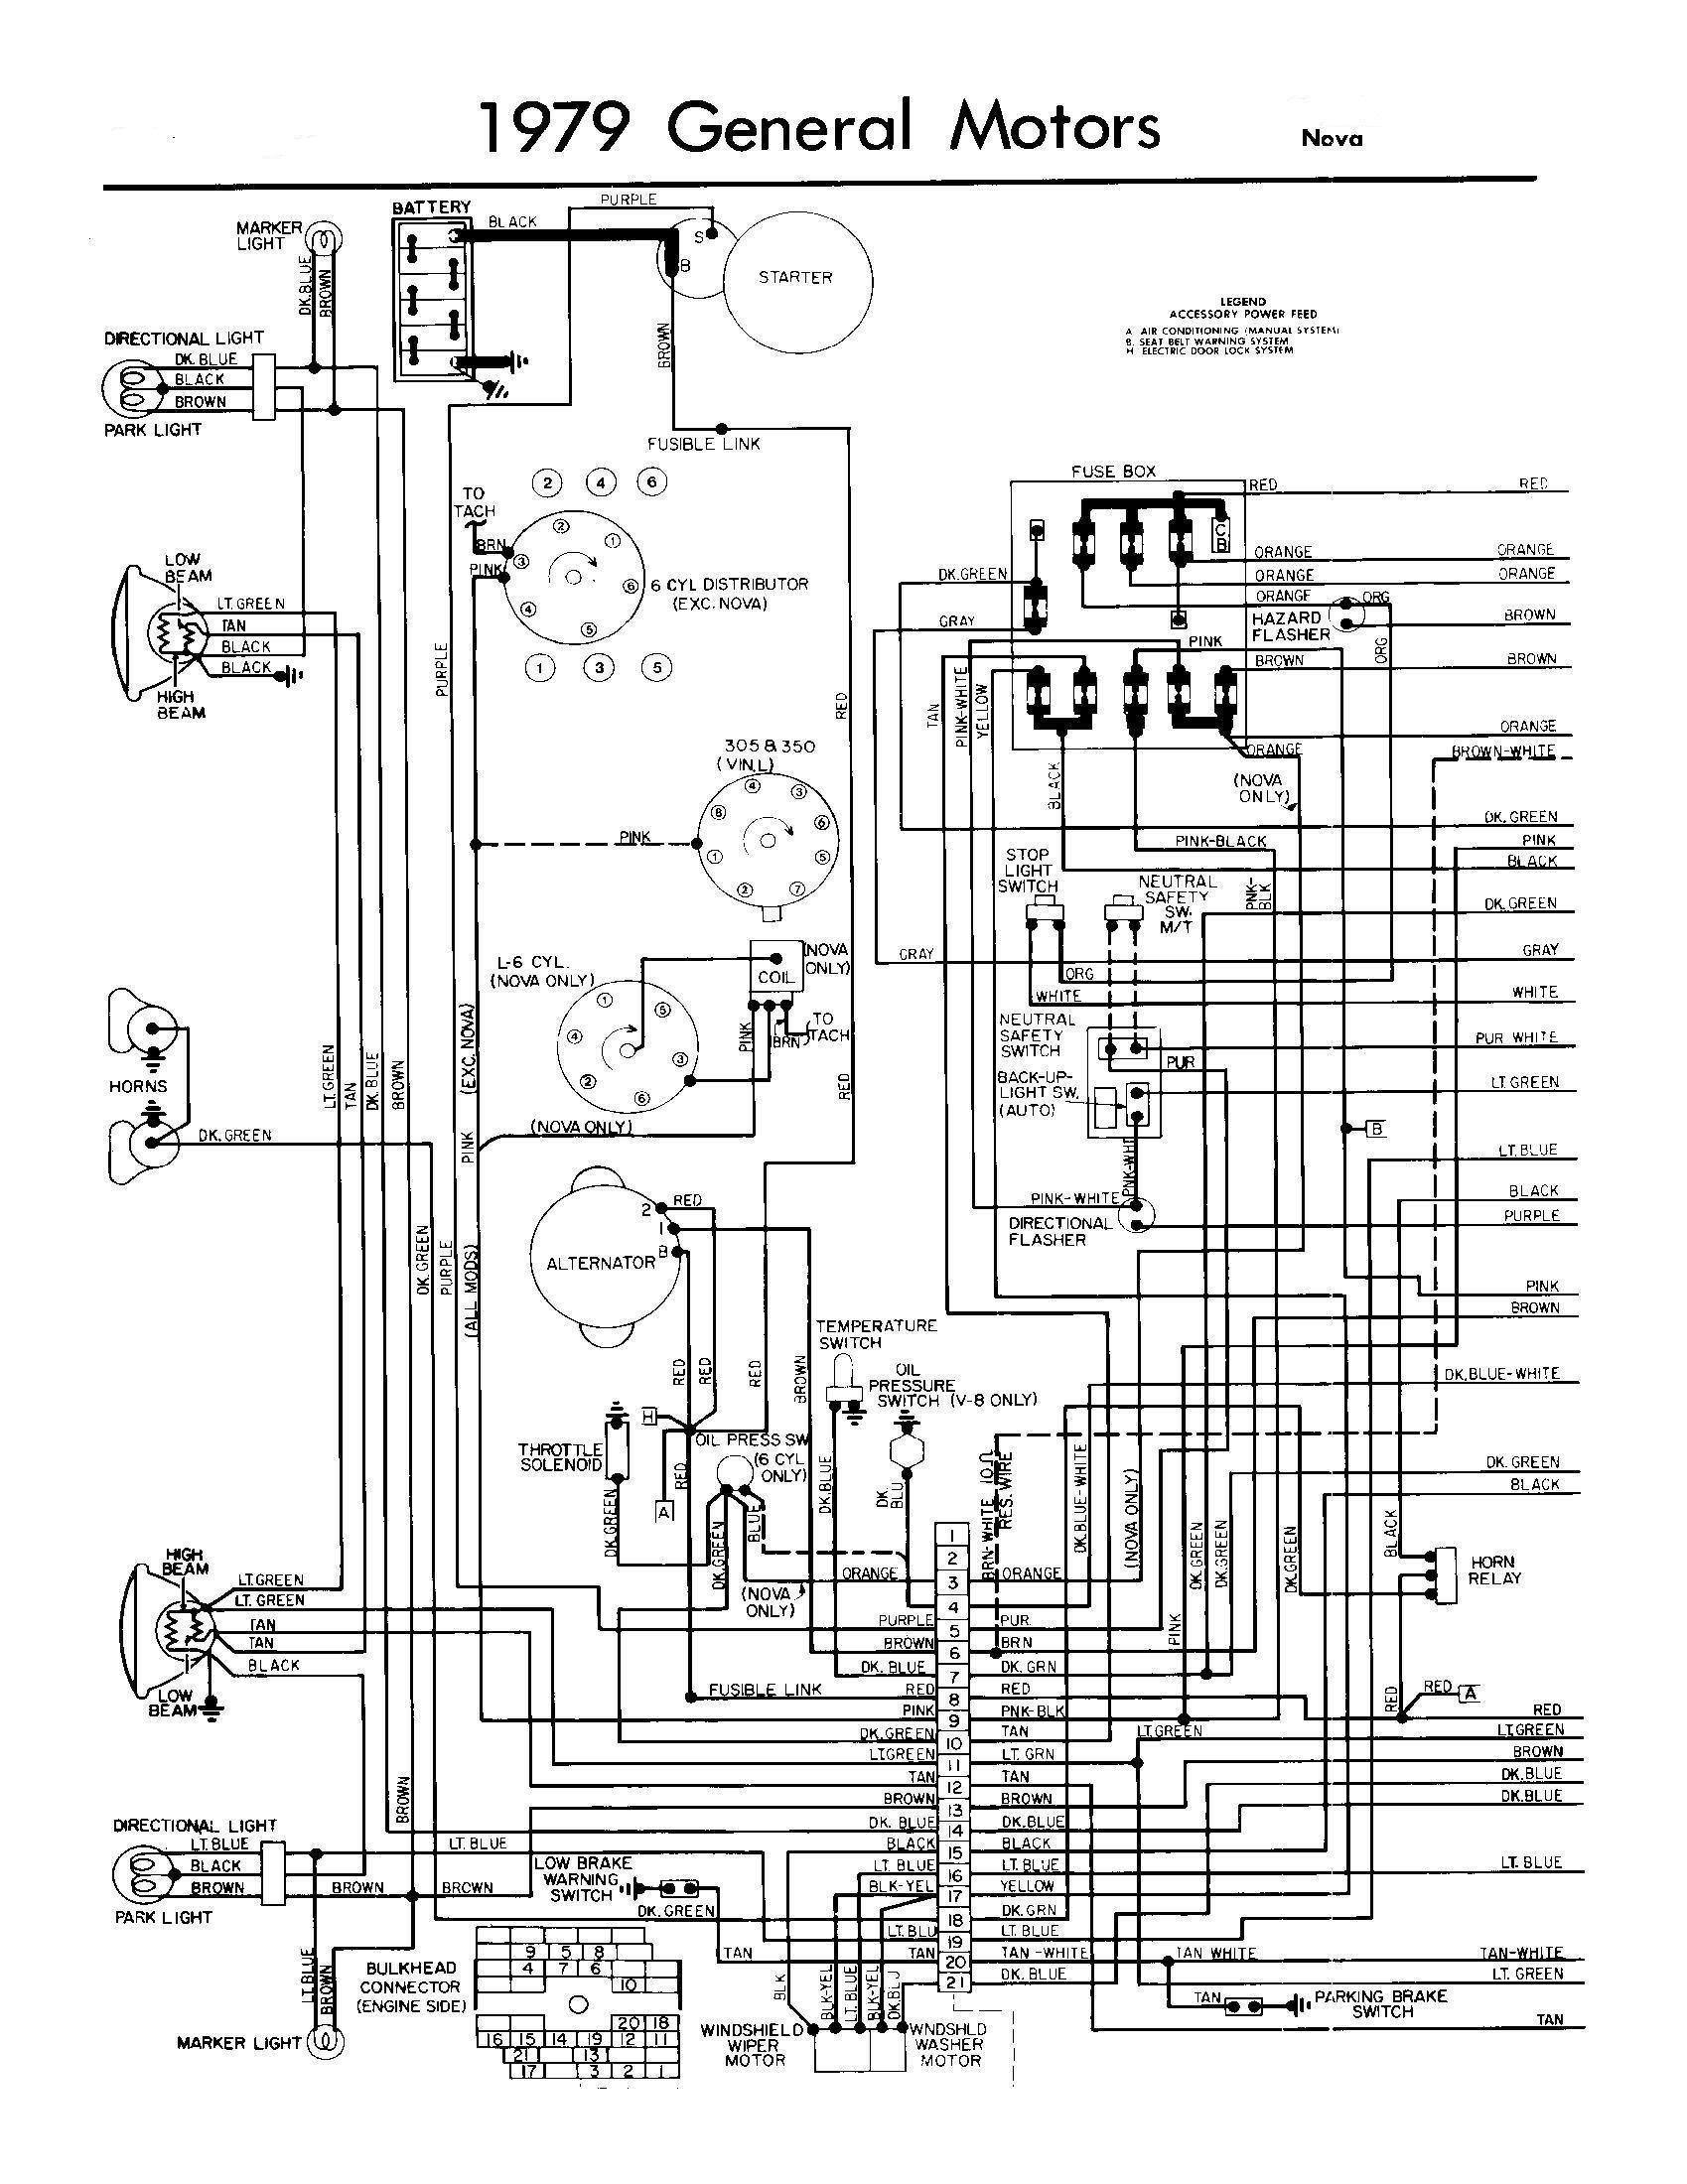 wiring diagram for 1998 oldsmobile wiring diagram online Chevy Astro Wiring-Diagram 2001 oldsmobile aurora engine diagram 1998 oldsmobile intrigue 1998 kenworth wiring diagram 2001 oldsmobile aurora engine